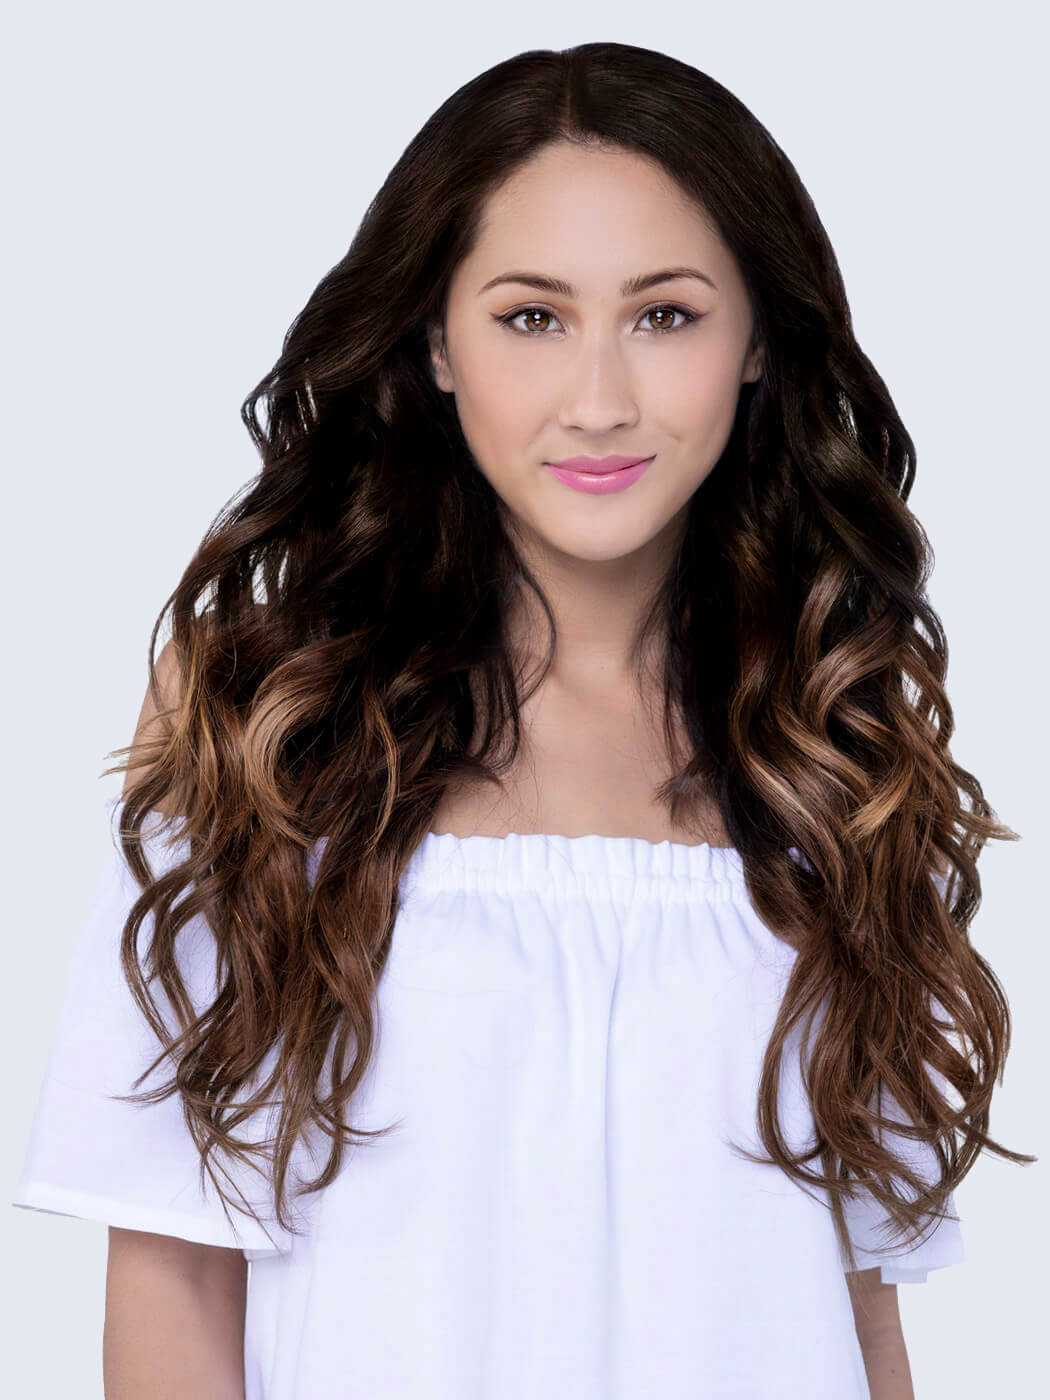 Human Hair Extensions | Ombre Clip In Extensions | Clip In hair Extensions | 20 Inch Hair Extensions | Human Hair Extensions